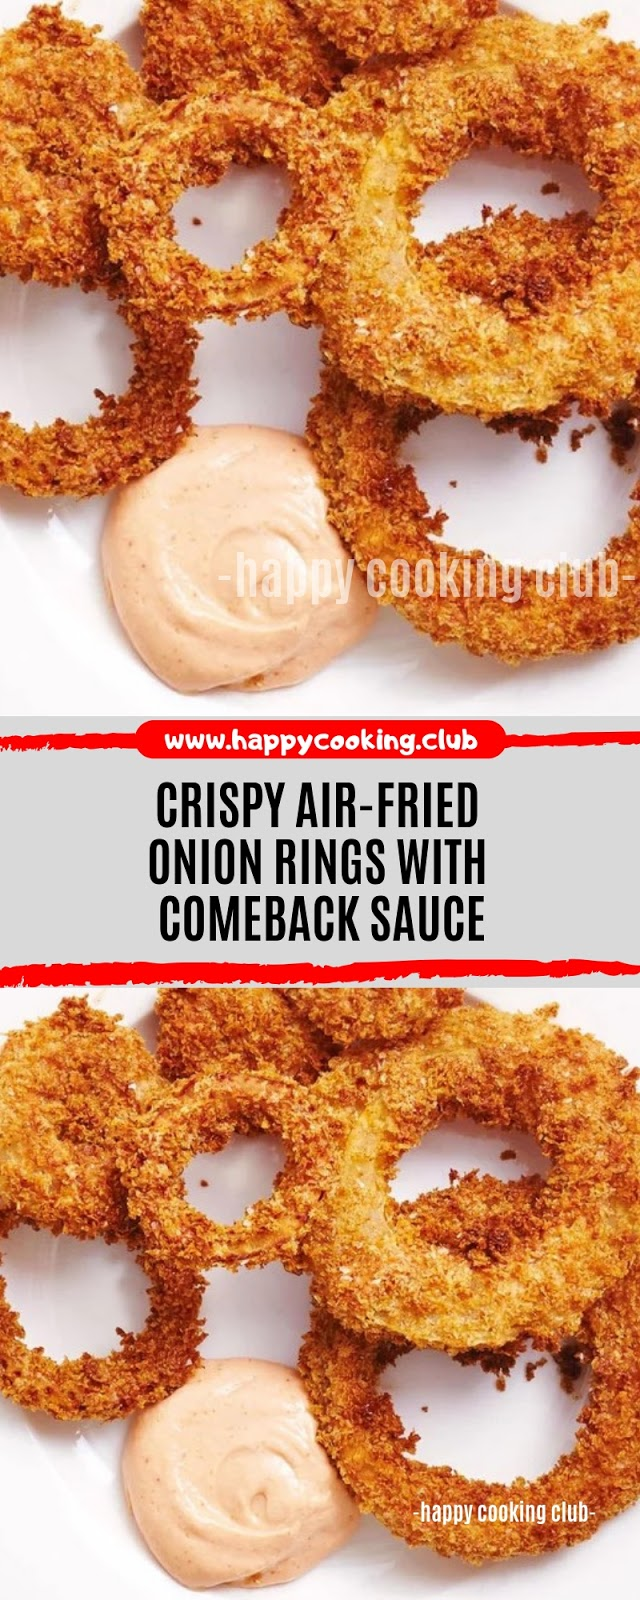 Crispy Air-Fried Onion Rings With Comeback Sauce